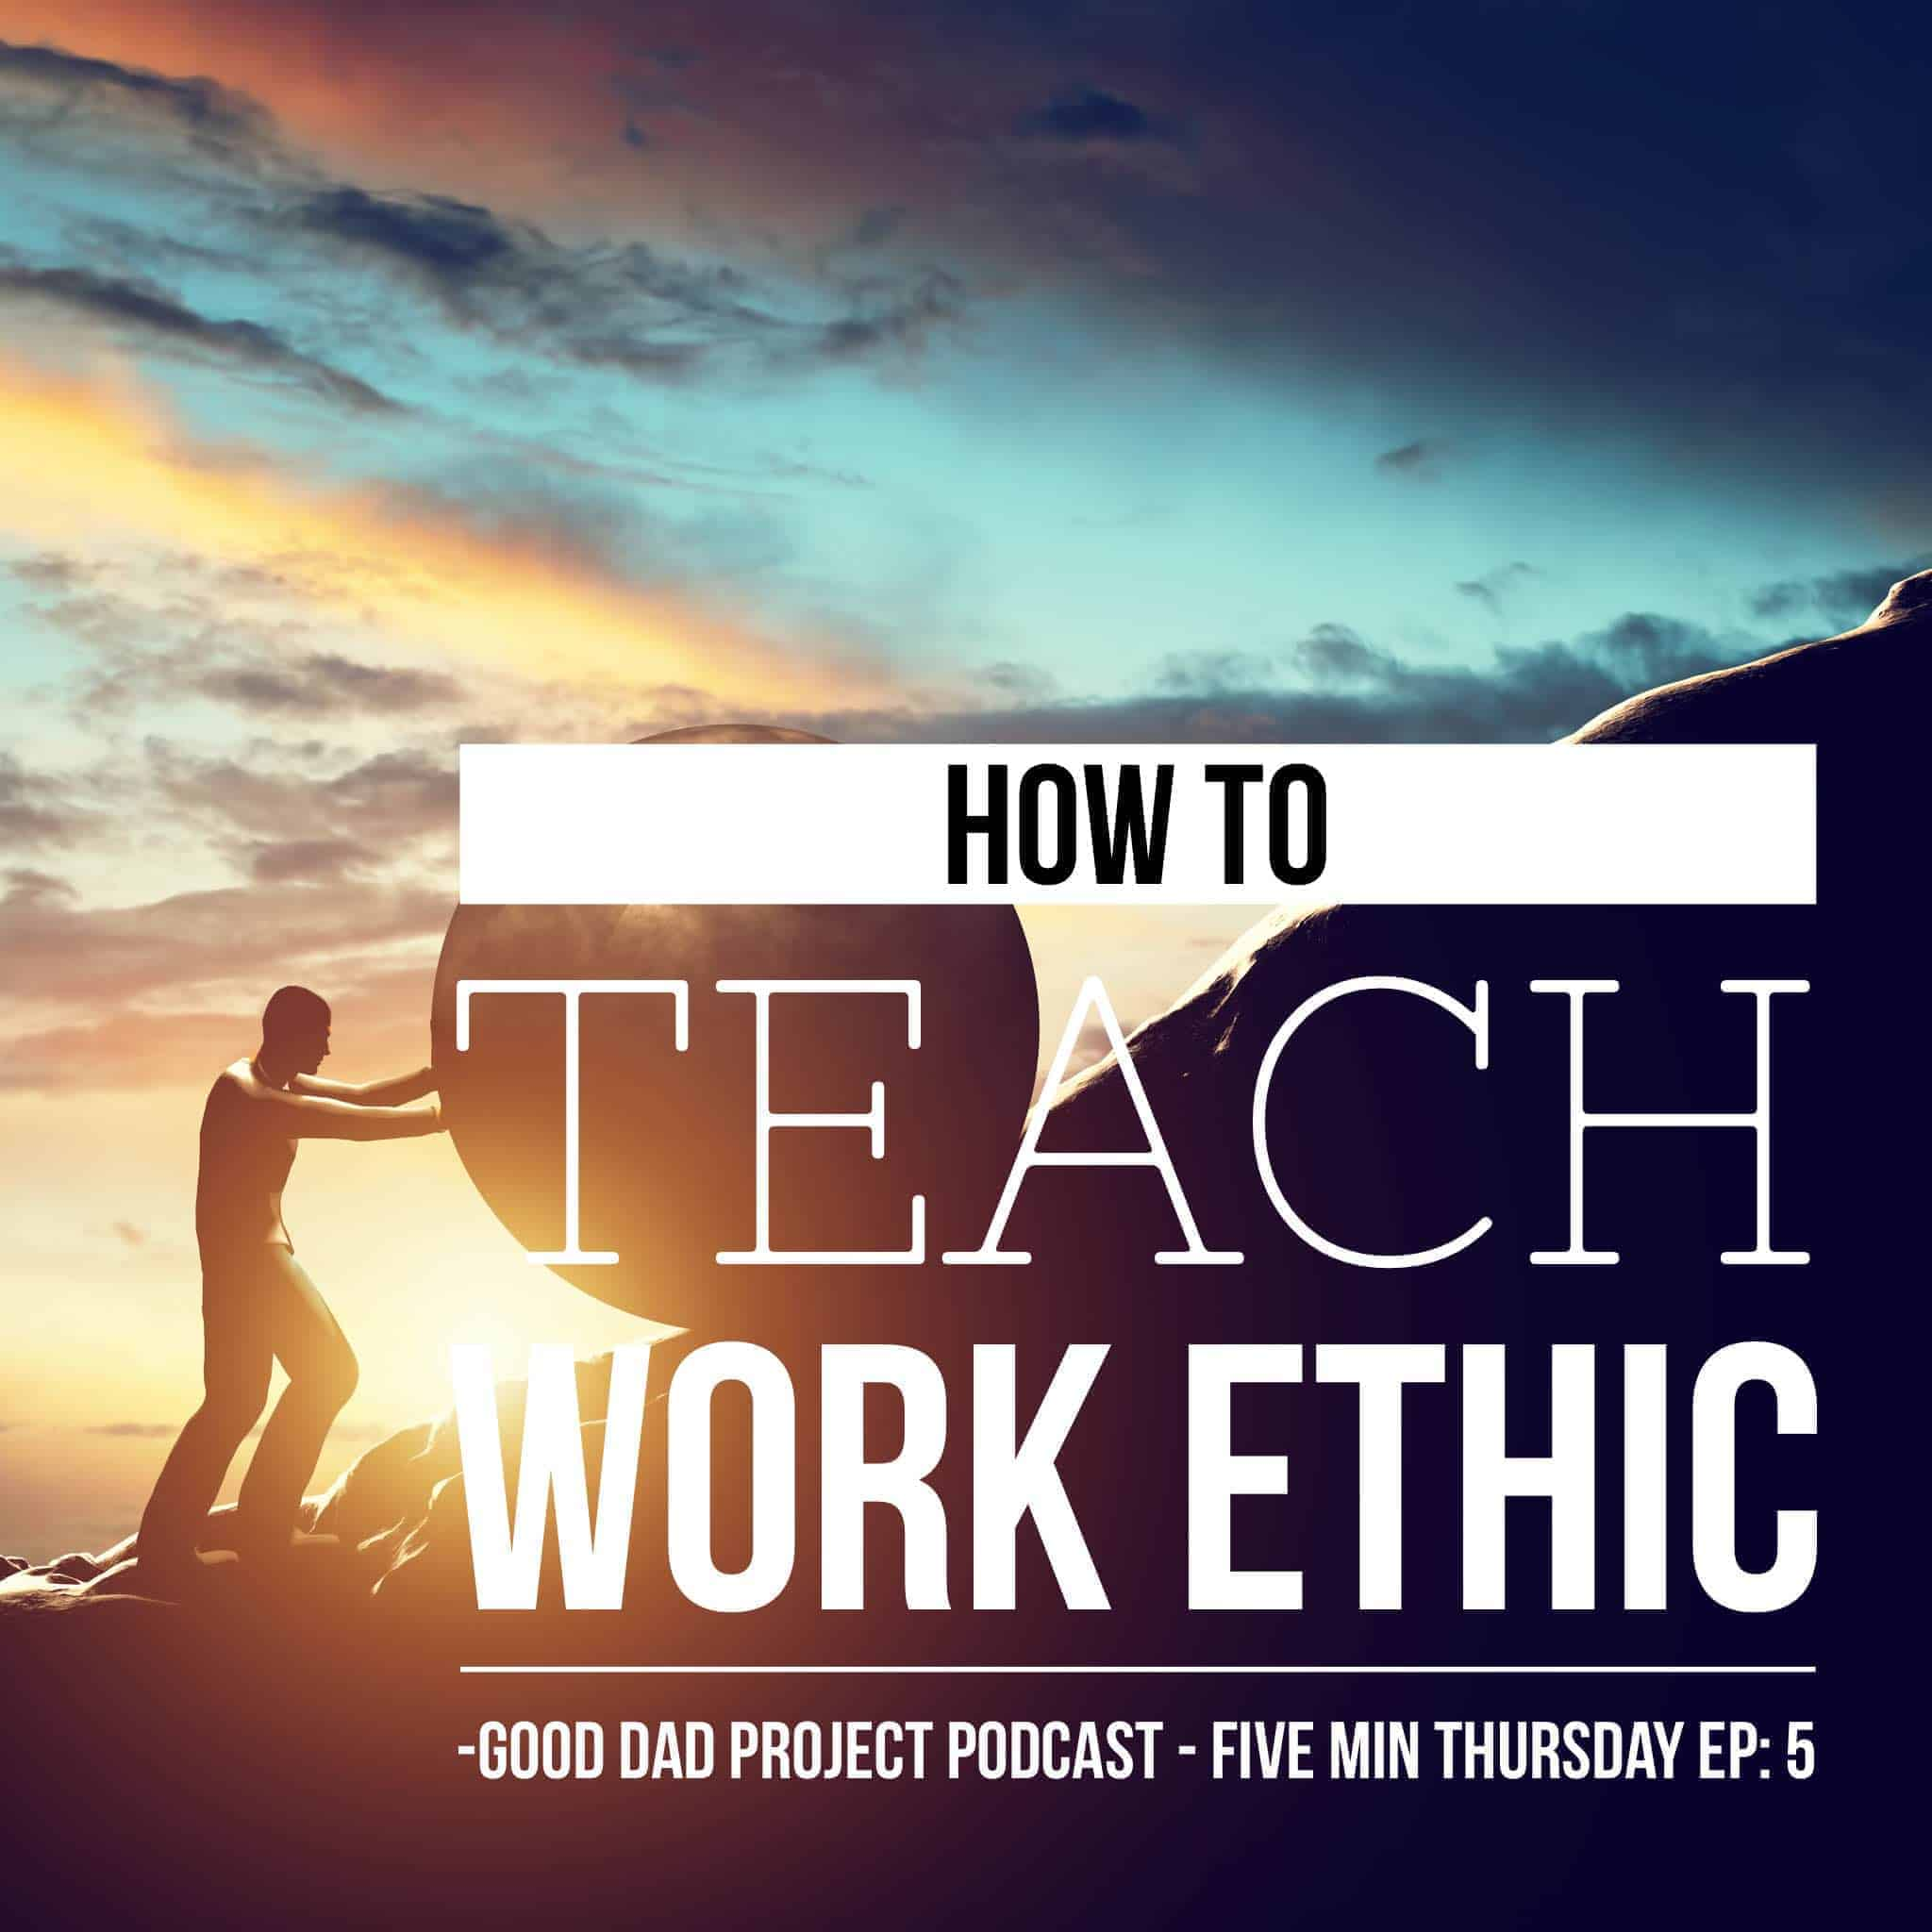 how to teach work ethic the good dad project